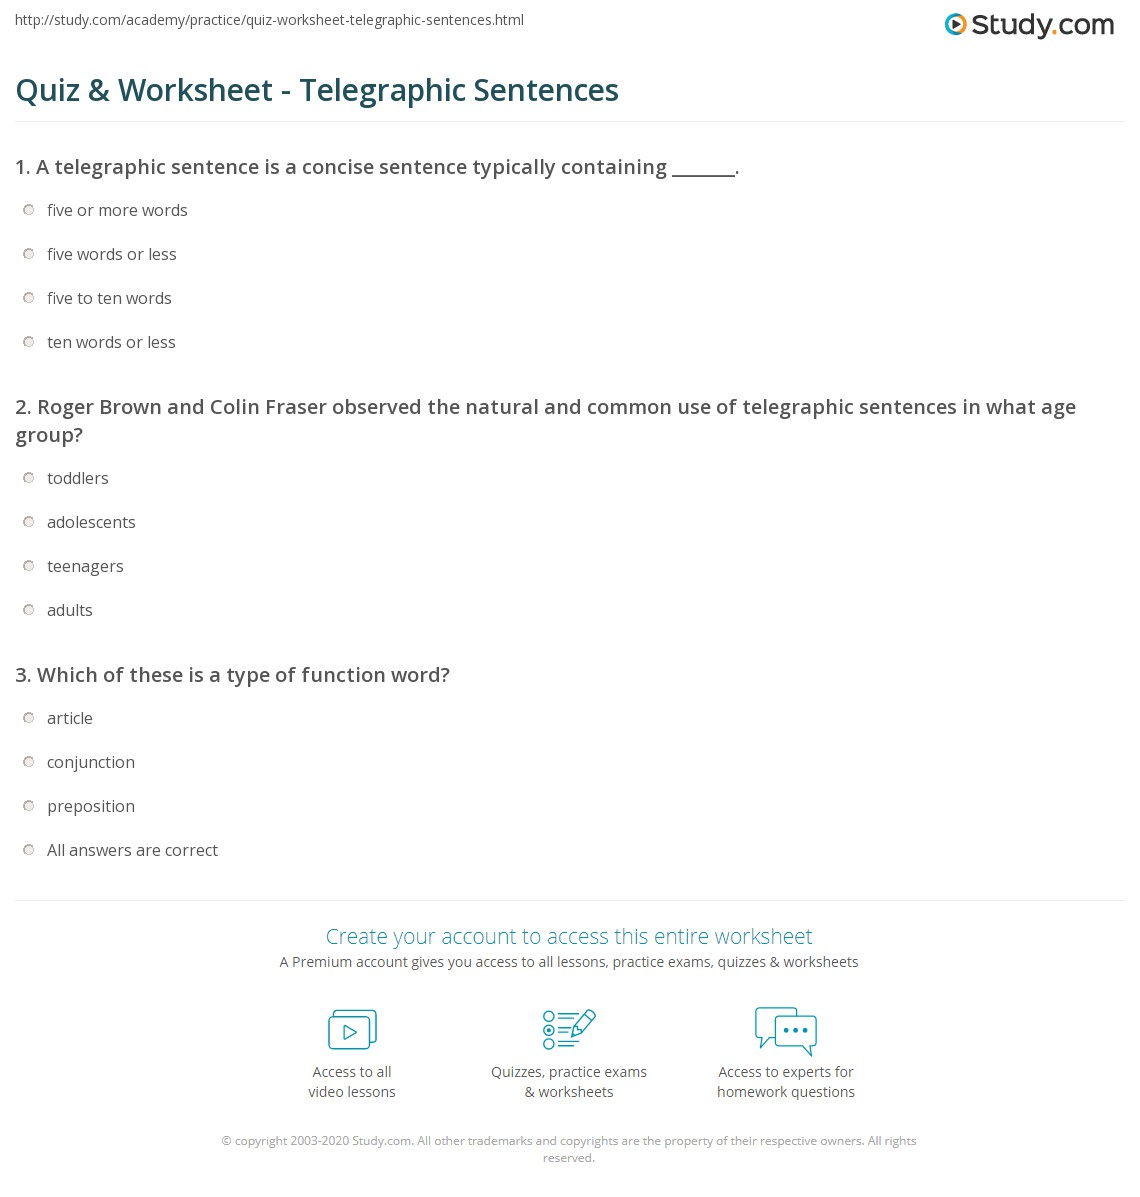 Print Telegraphic Sentence: Definition & Examples Worksheet